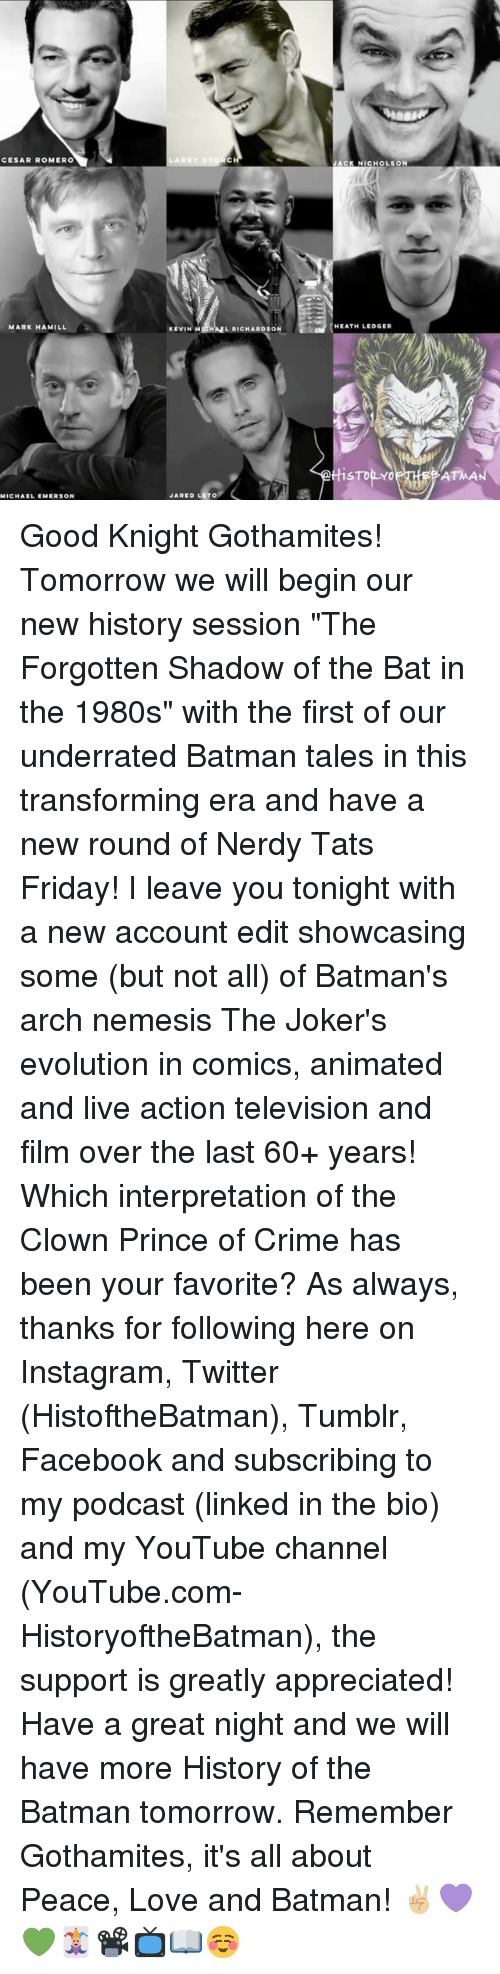 """Batman, Crime, and Facebook: CESAR ROMERO  MARK HAMILL  MICHAEL EMERSON  LARRY STO  KEVIN M  L RICHARDSON  JARED LETO  ACK NICHOLSON  HEATH LEDGER  STop Y Good Knight Gothamites! Tomorrow we will begin our new history session """"The Forgotten Shadow of the Bat in the 1980s"""" with the first of our underrated Batman tales in this transforming era and have a new round of Nerdy Tats Friday! I leave you tonight with a new account edit showcasing some (but not all) of Batman's arch nemesis The Joker's evolution in comics, animated and live action television and film over the last 60+ years! Which interpretation of the Clown Prince of Crime has been your favorite? As always, thanks for following here on Instagram, Twitter (HistoftheBatman), Tumblr, Facebook and subscribing to my podcast (linked in the bio) and my YouTube channel (YouTube.com-HistoryoftheBatman), the support is greatly appreciated! Have a great night and we will have more History of the Batman tomorrow. Remember Gothamites, it's all about Peace, Love and Batman! ✌🏼💜💚🃏📽📺📖☺"""